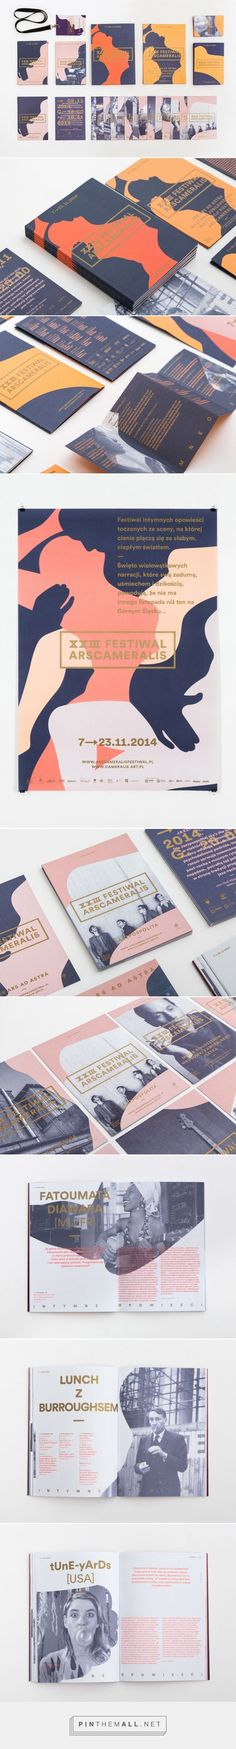 Polish multidisciplinary graphic designer Marta Gawin created this great identity for the XXIII Ars Cameralis Festival a visual arts festival in Poland. Logo Design, Design Poster, Graphic Design Branding, Graphic Design Illustration, Identity Design, Brochure Design, Typography Design, Layout Design, Print Design